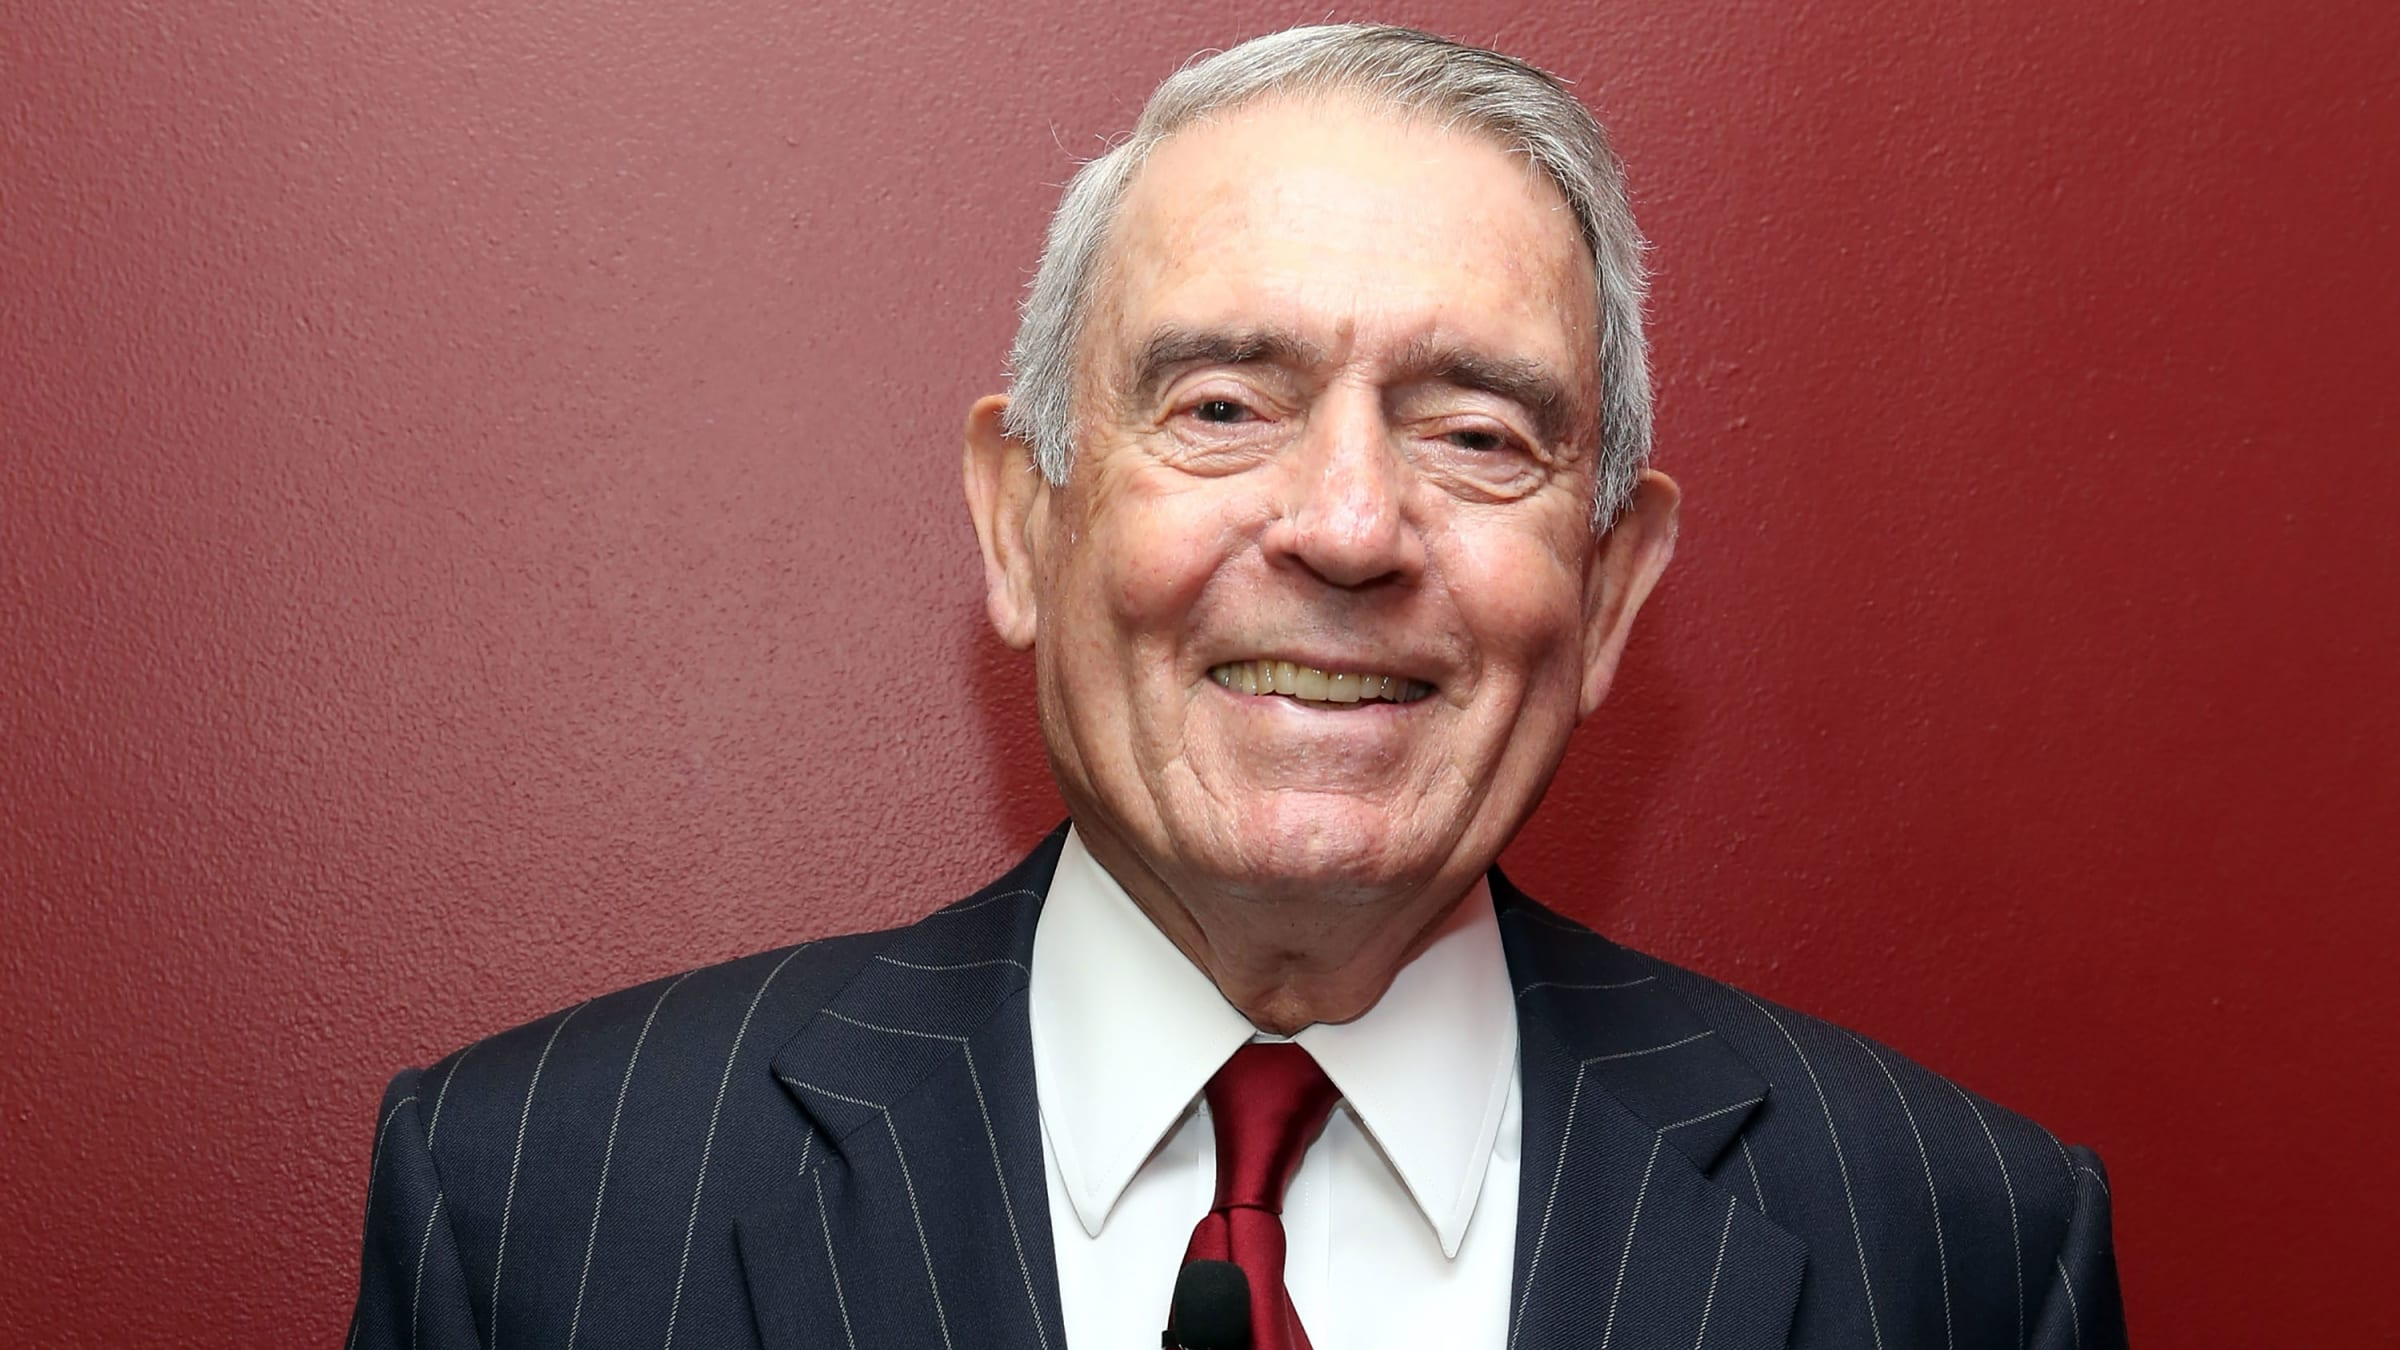 Dan Rather Sounds Off on Fox News: 'The Closest We've Come to State-Run Media'